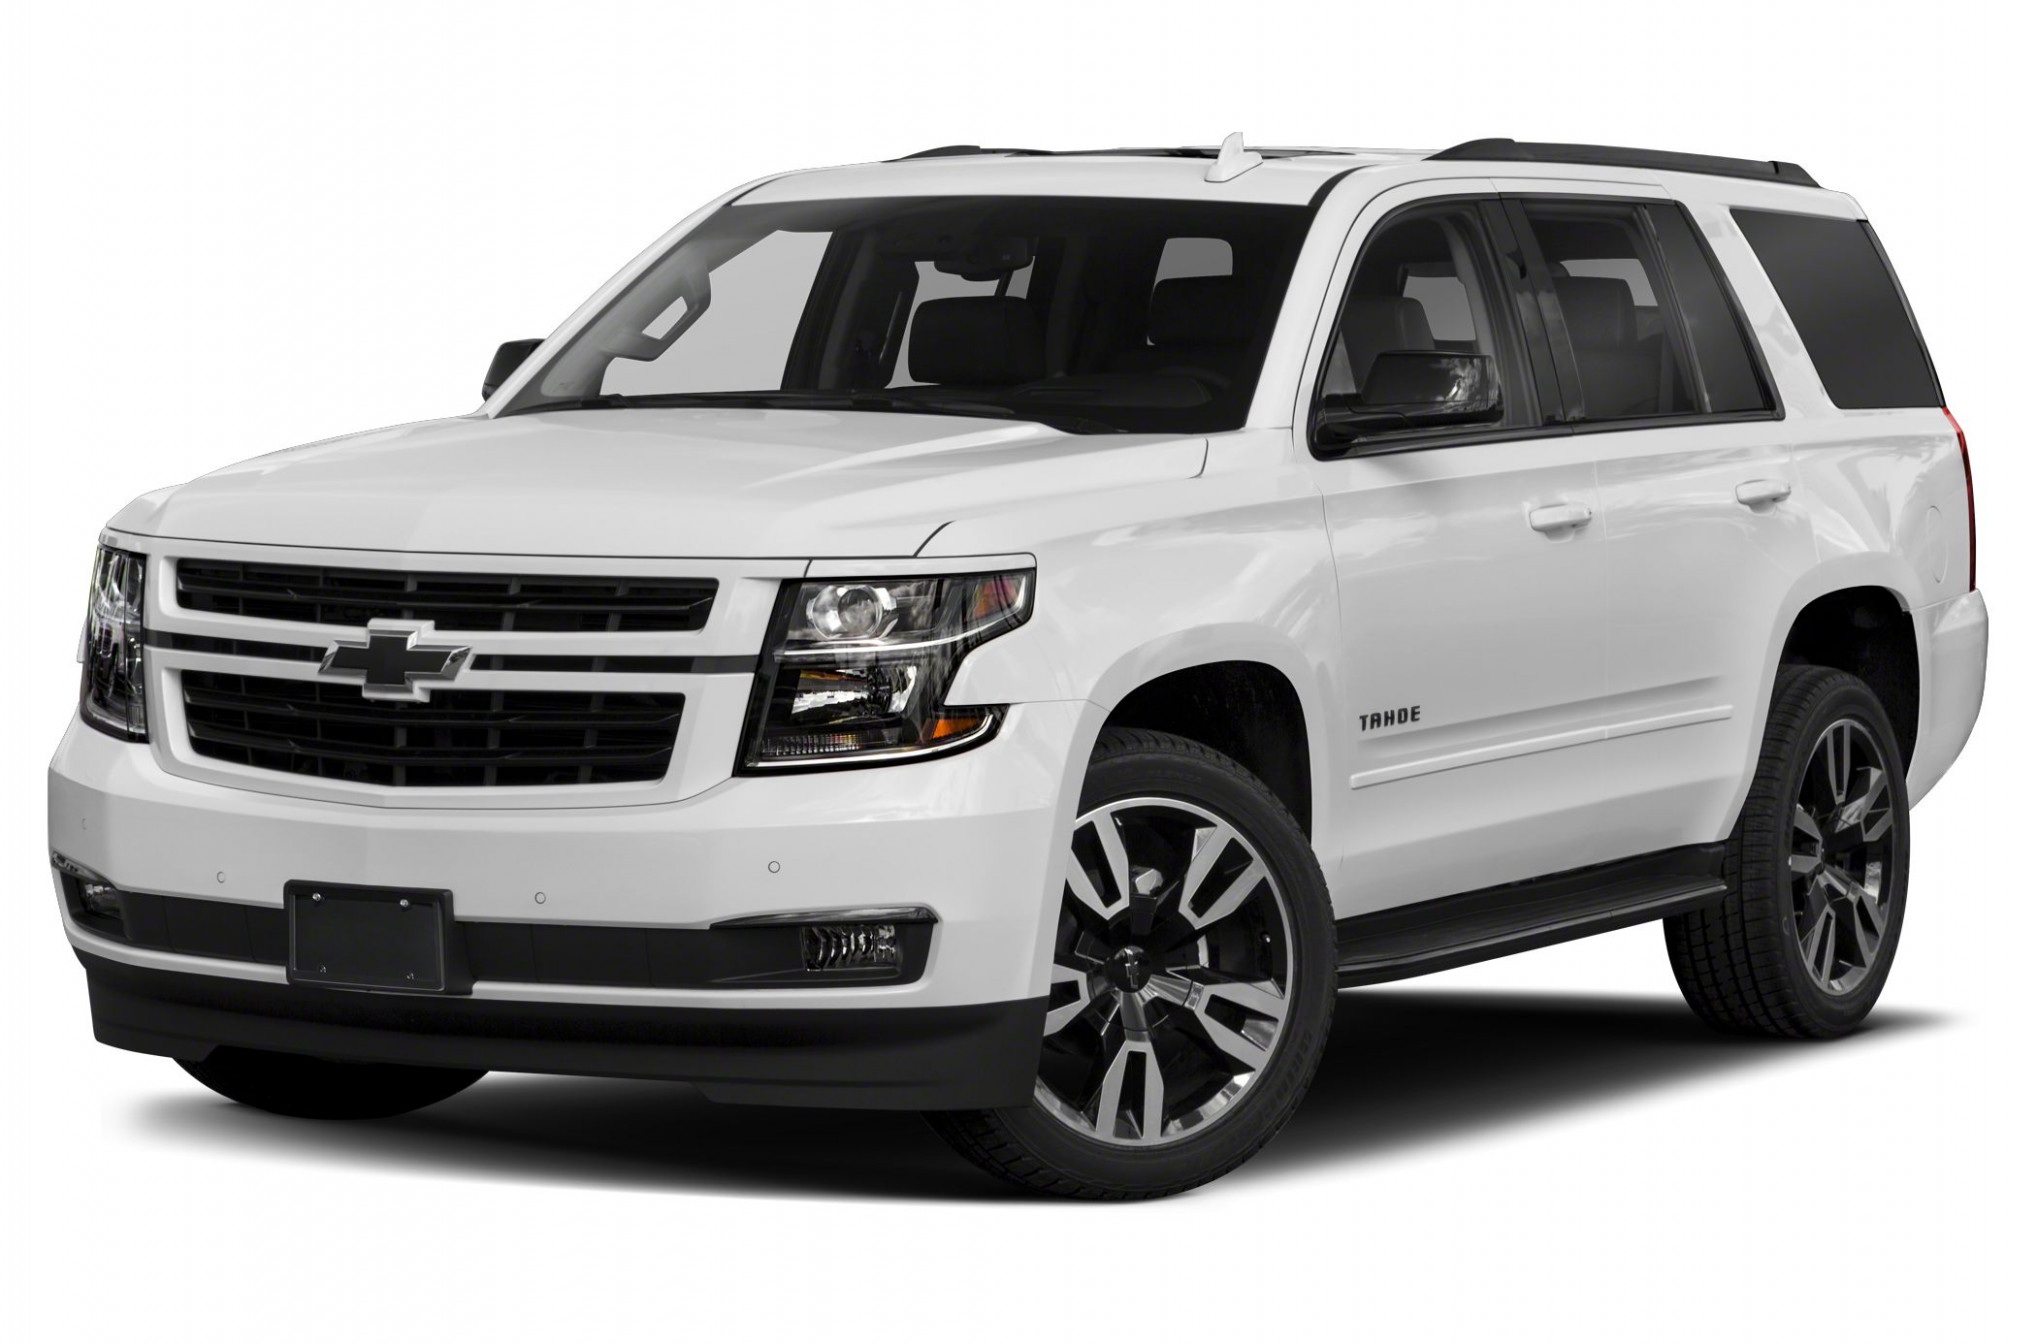 8 Chevrolet Tahoe Premier 8x8 Pricing and Options - 2020 chevrolet 4x4